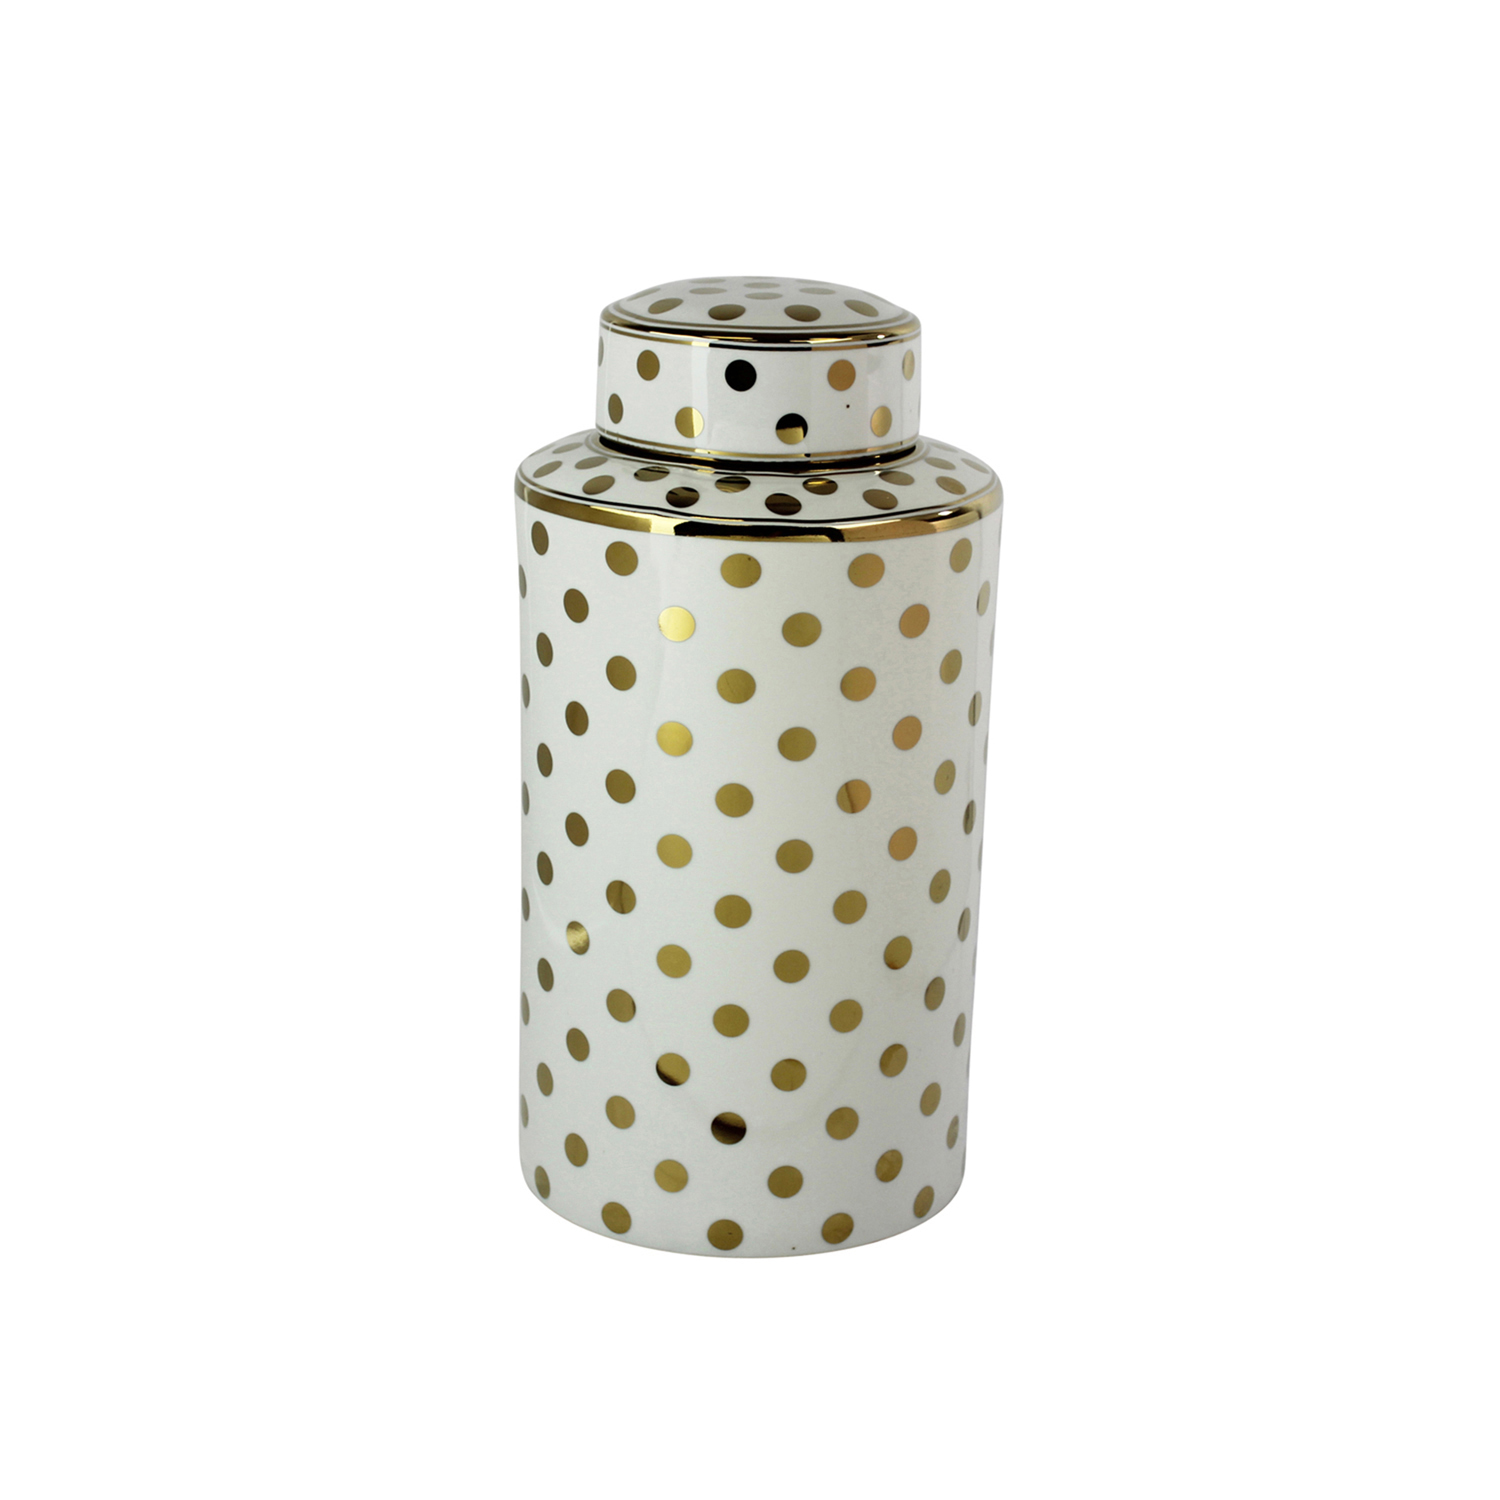 White & Gold Elegant Glam Decorative Covered Jar